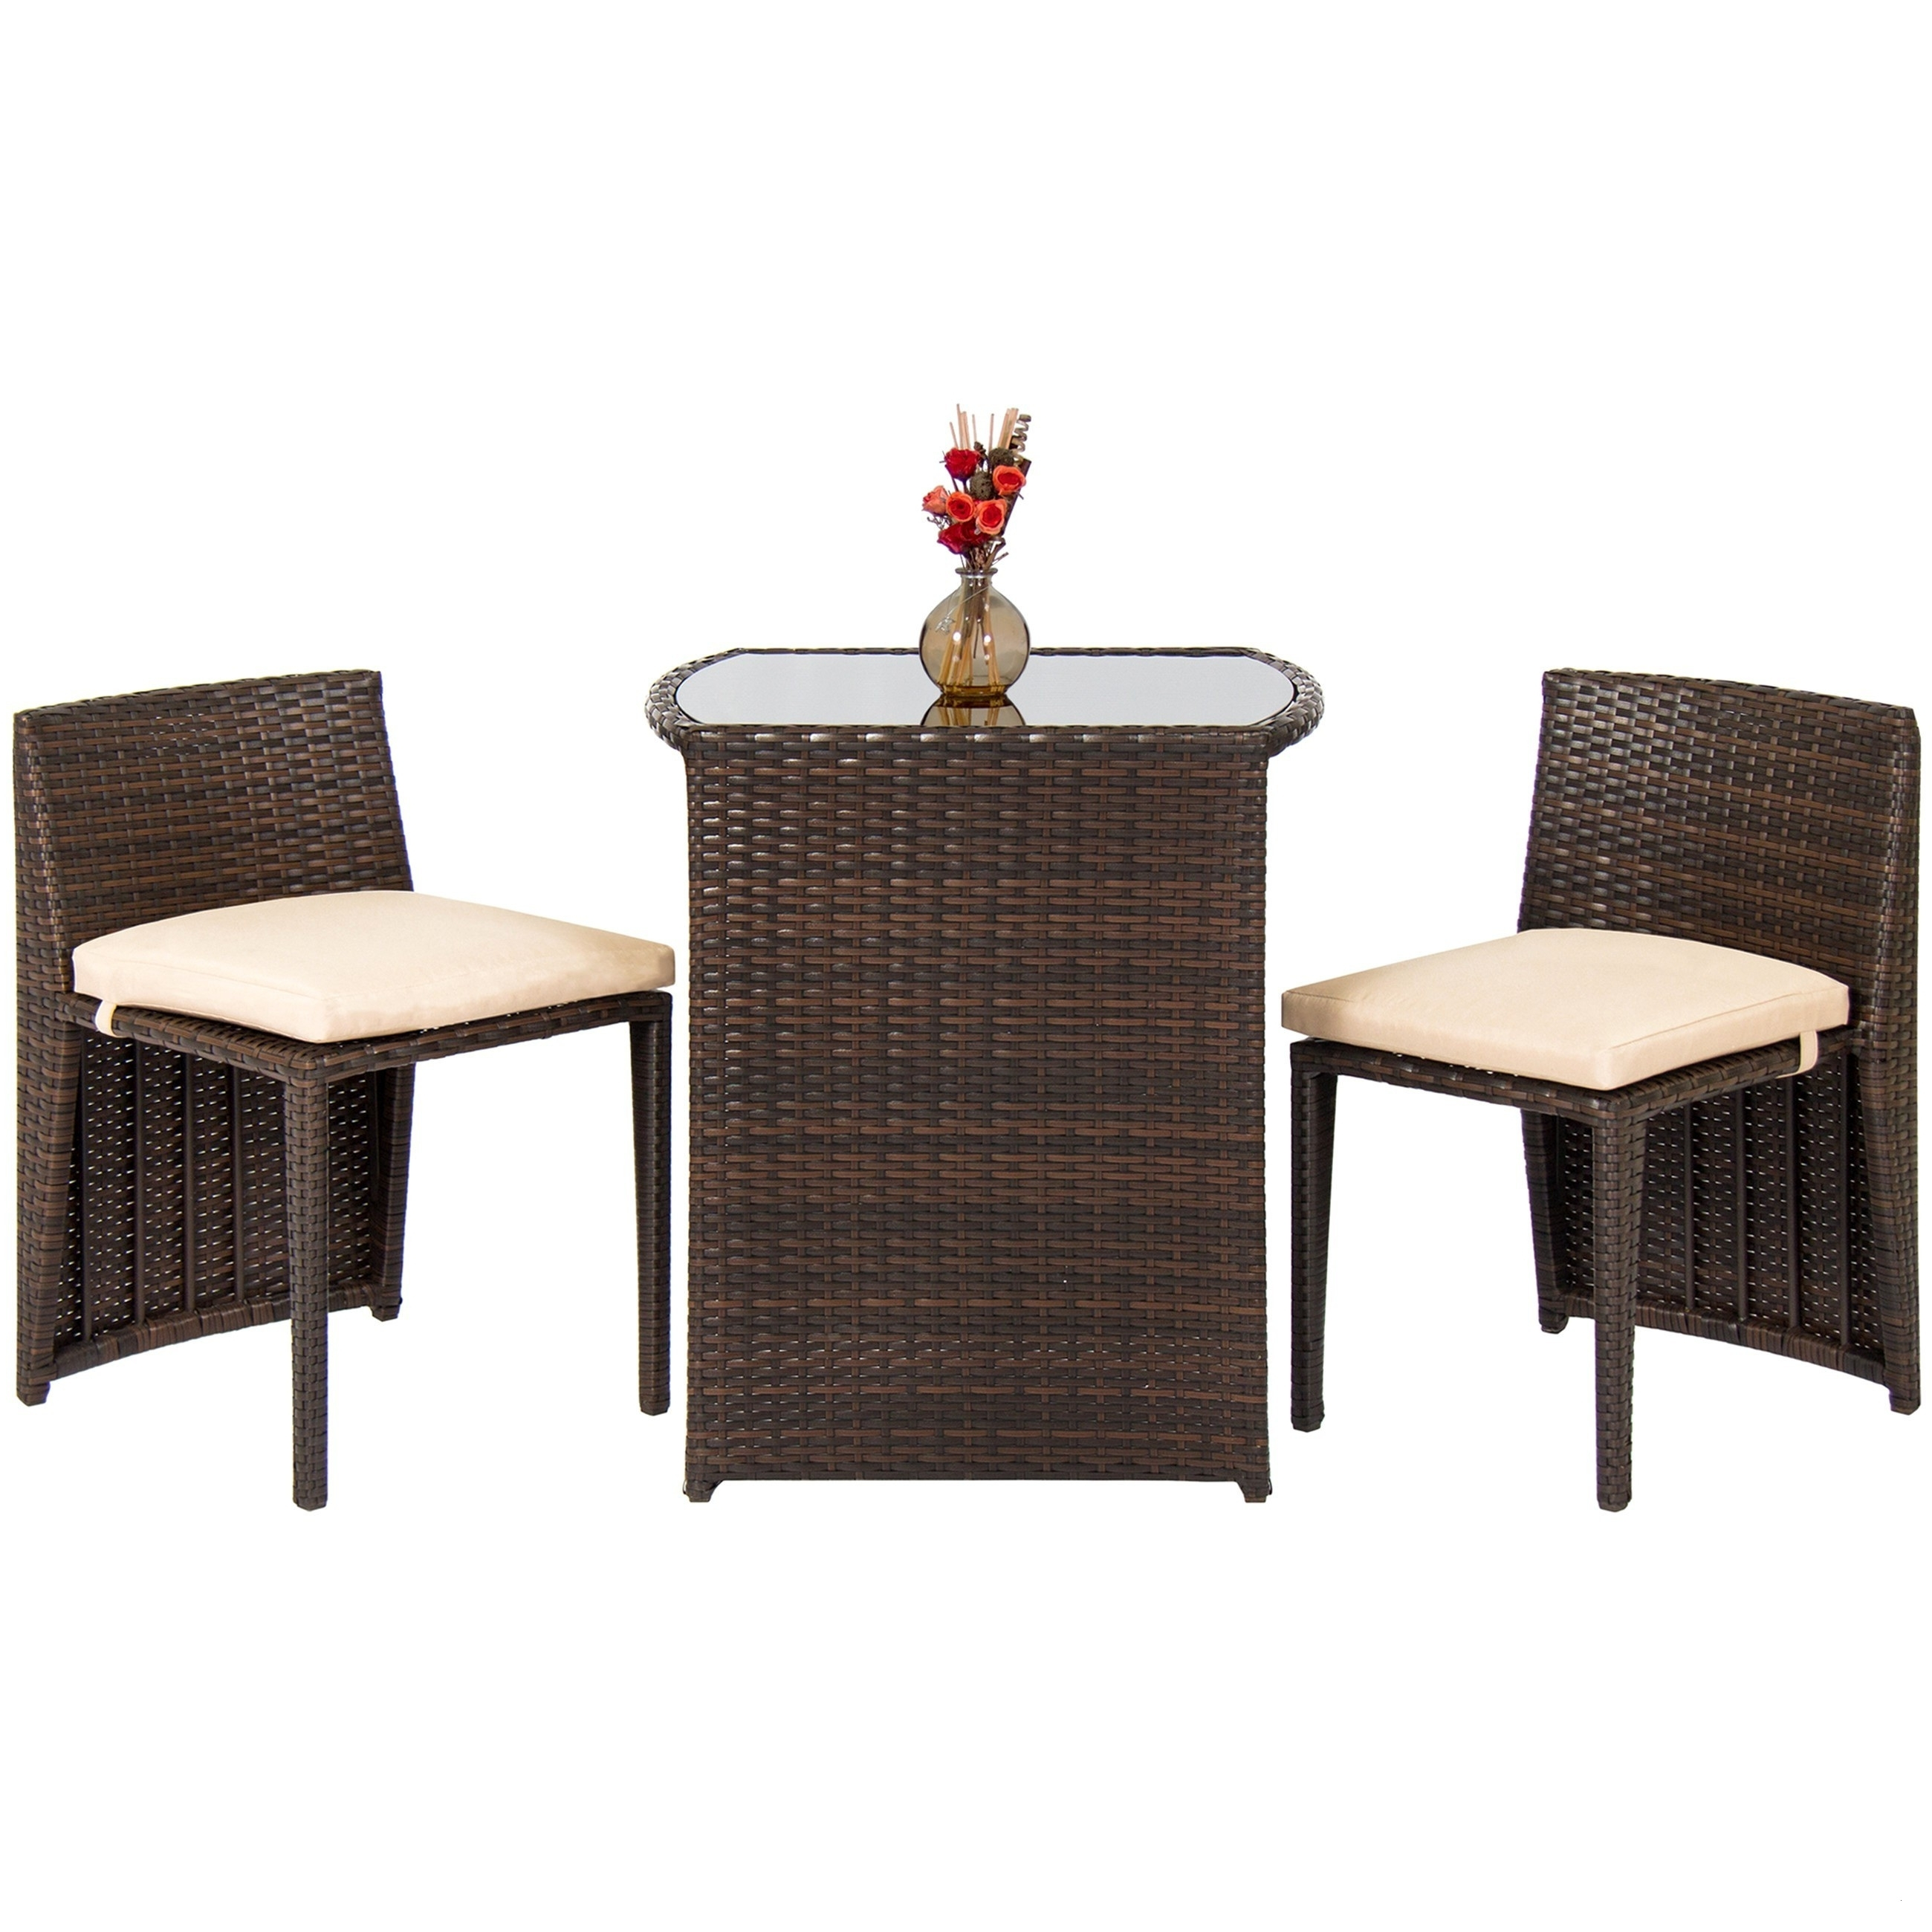 Well Known Kroger Outdoor Furniture Awesome Kroger Patio Furniture 30 Fresh With Regard To Kroger Outdoor Lanterns (View 18 of 20)